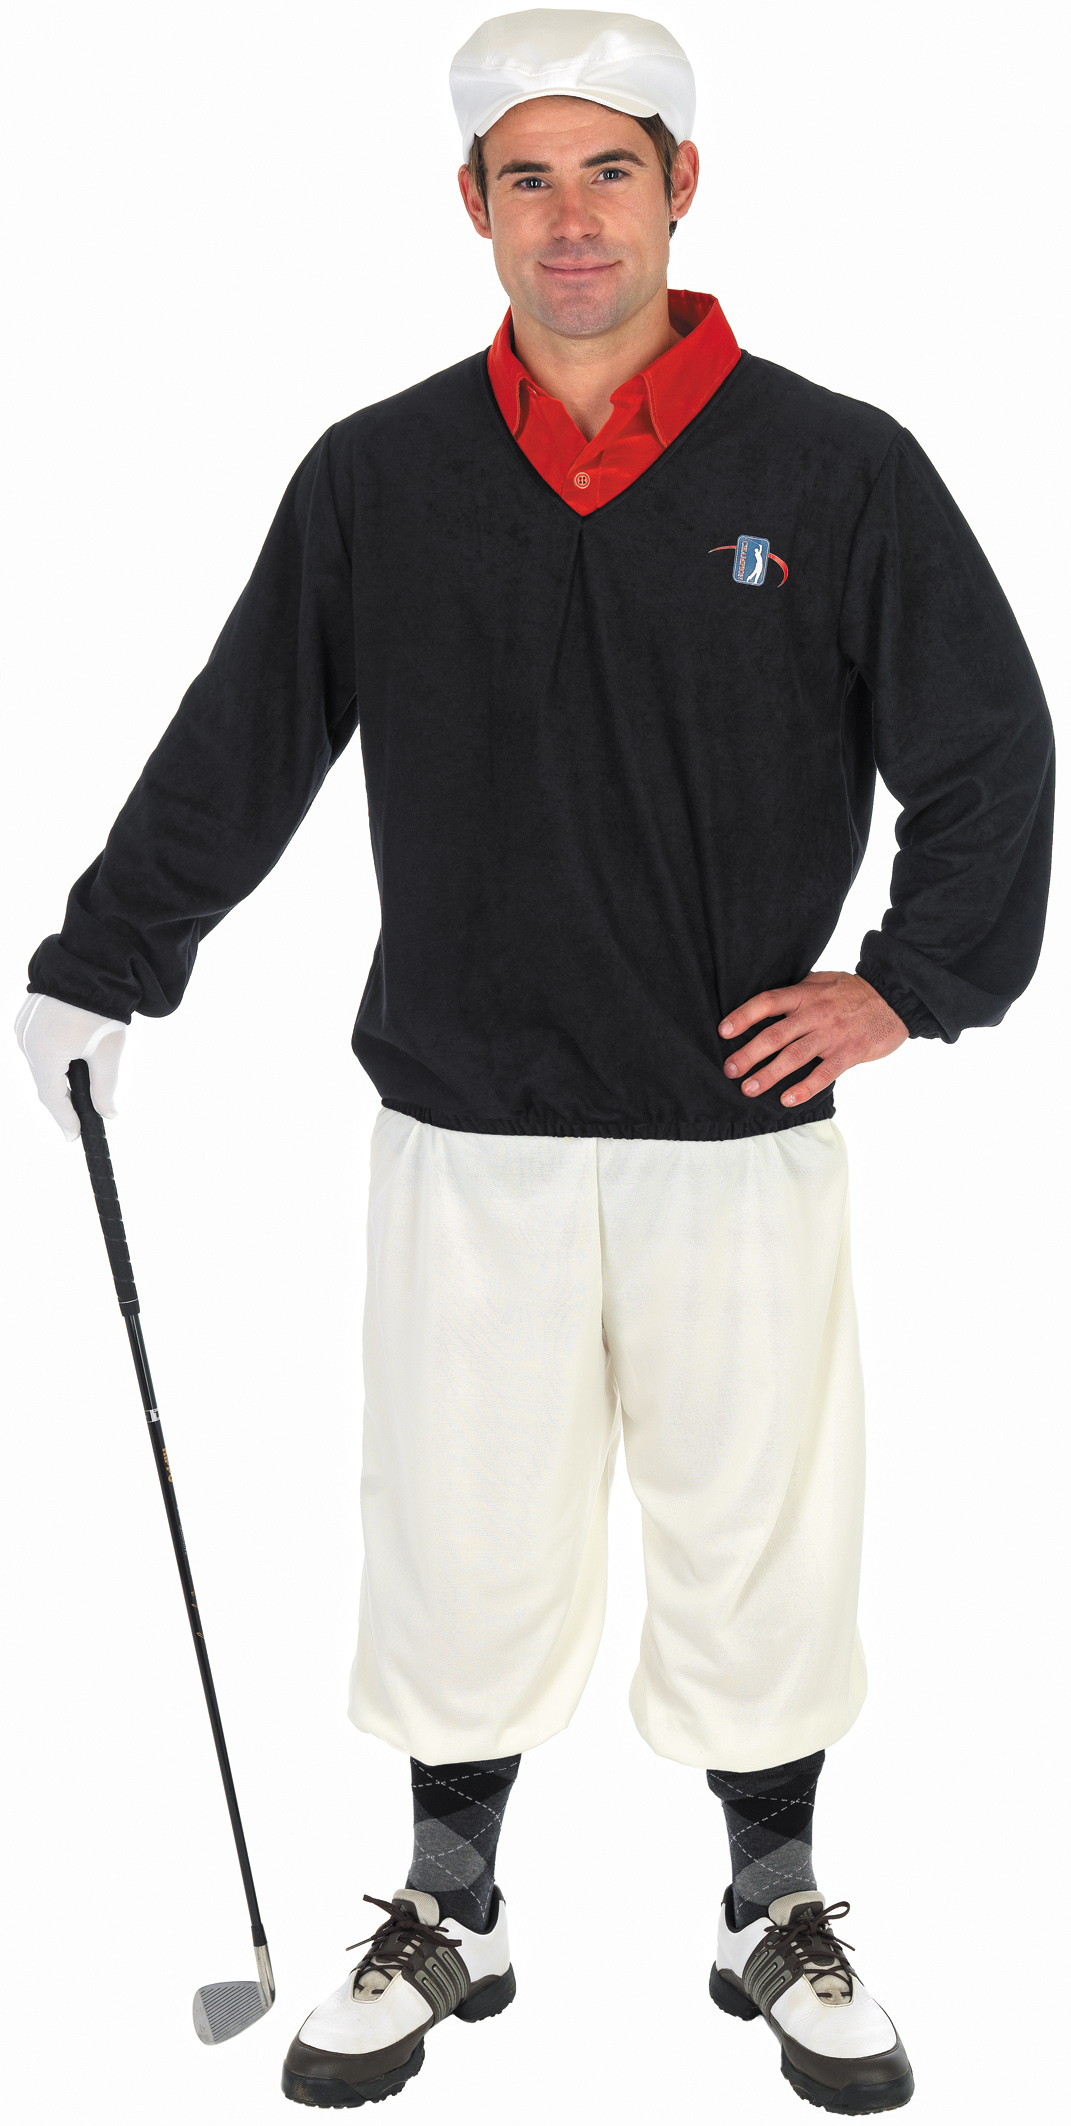 Mens pub golf outfit on a budget